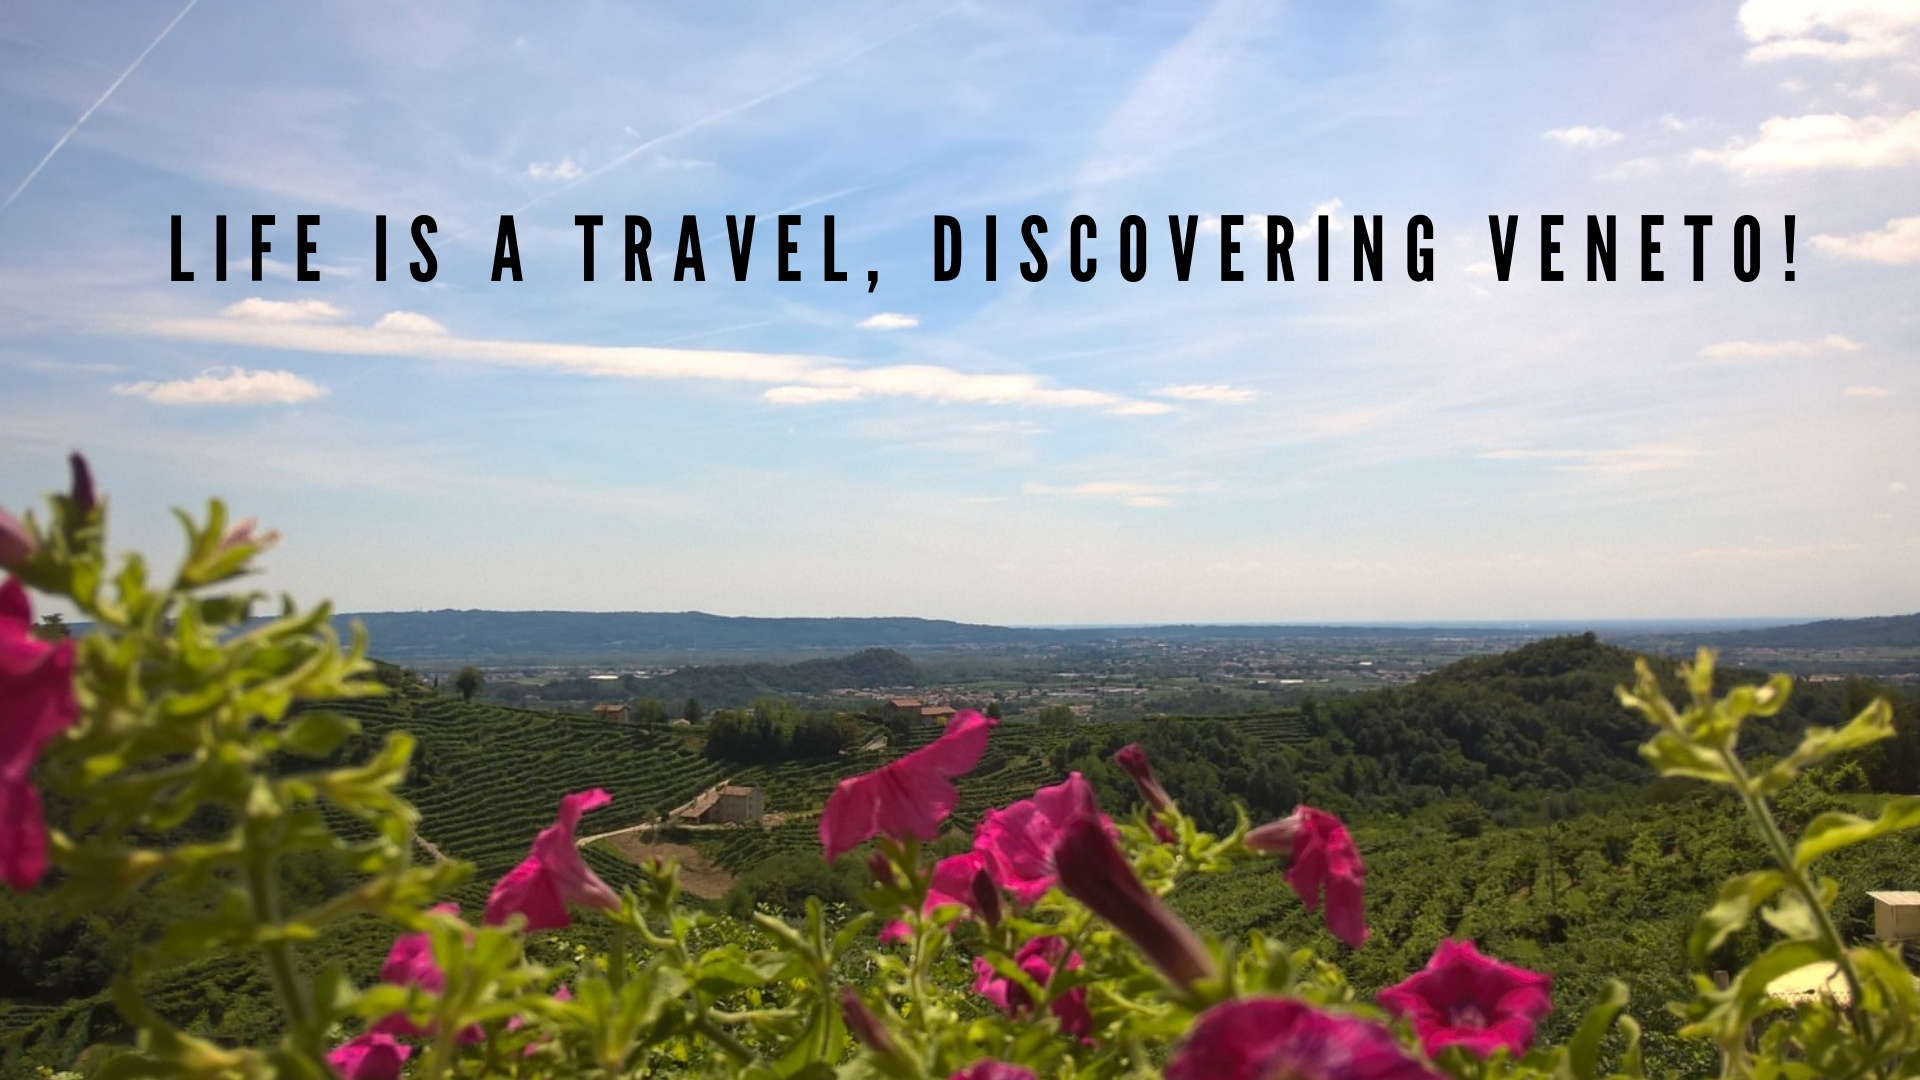 LIFE IS A TRAVEL, DISCOVERING VENETO!.jpg